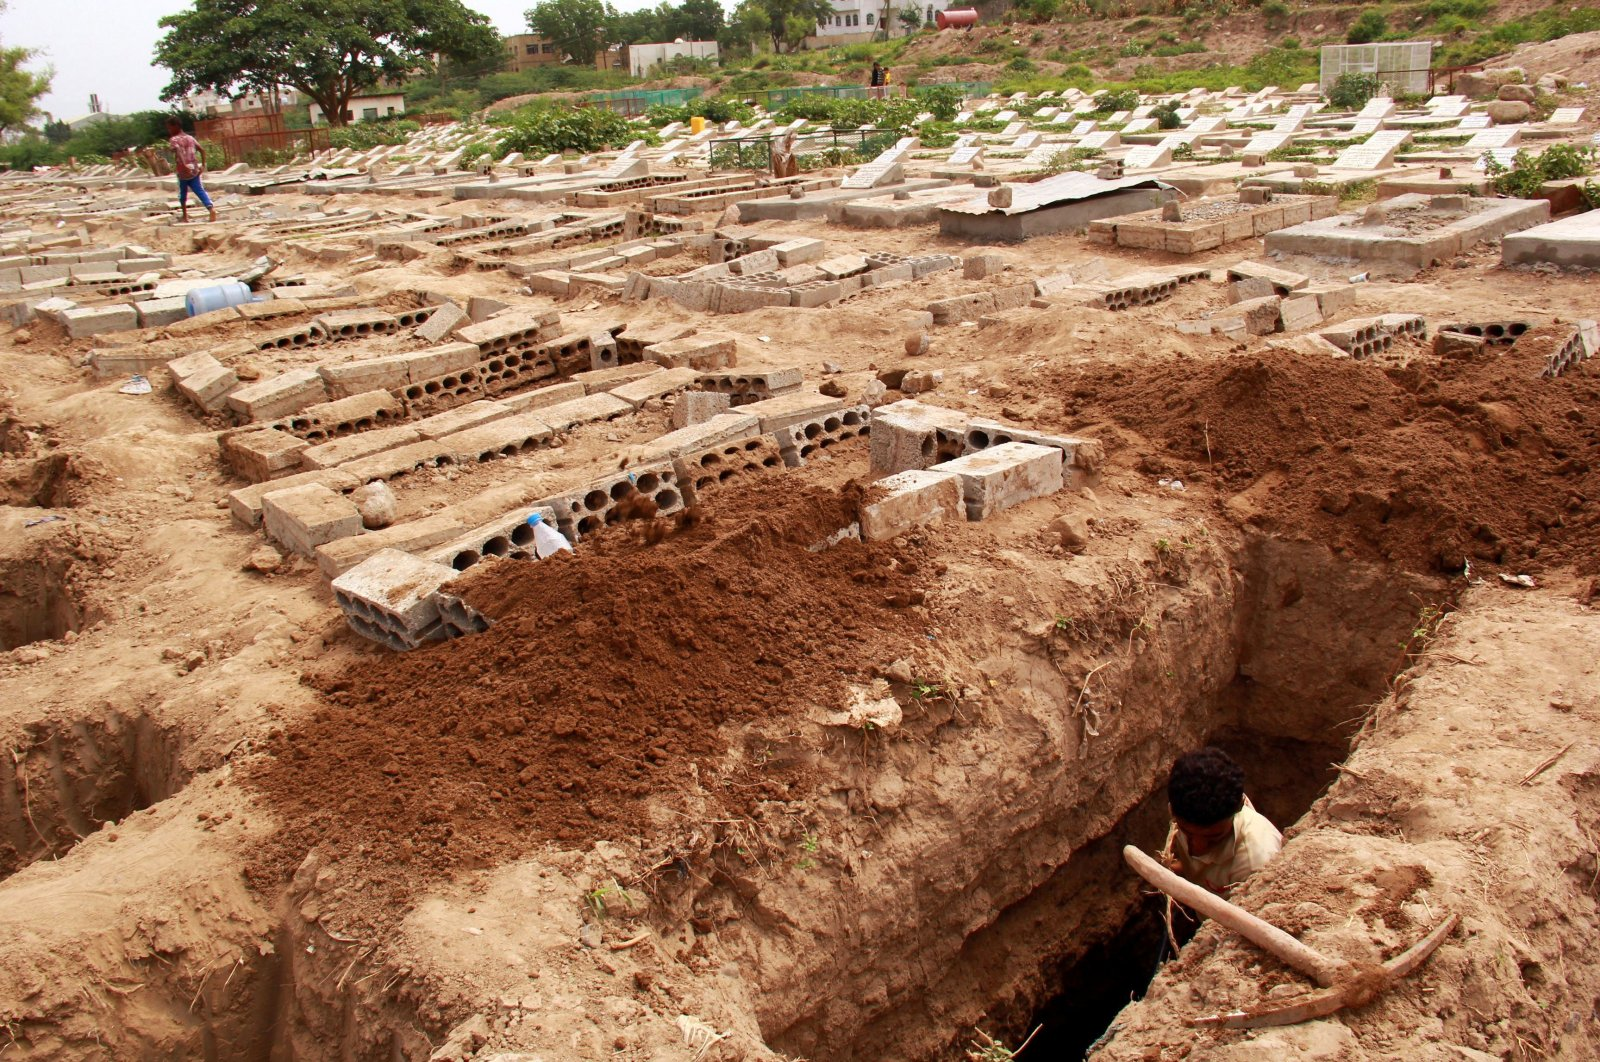 A man digs a grave at a cemetery where victims of the coronavirus disease (COVID-19) are buried in Taiz, Yemen, June 23, 2020. (Reuters Photo)